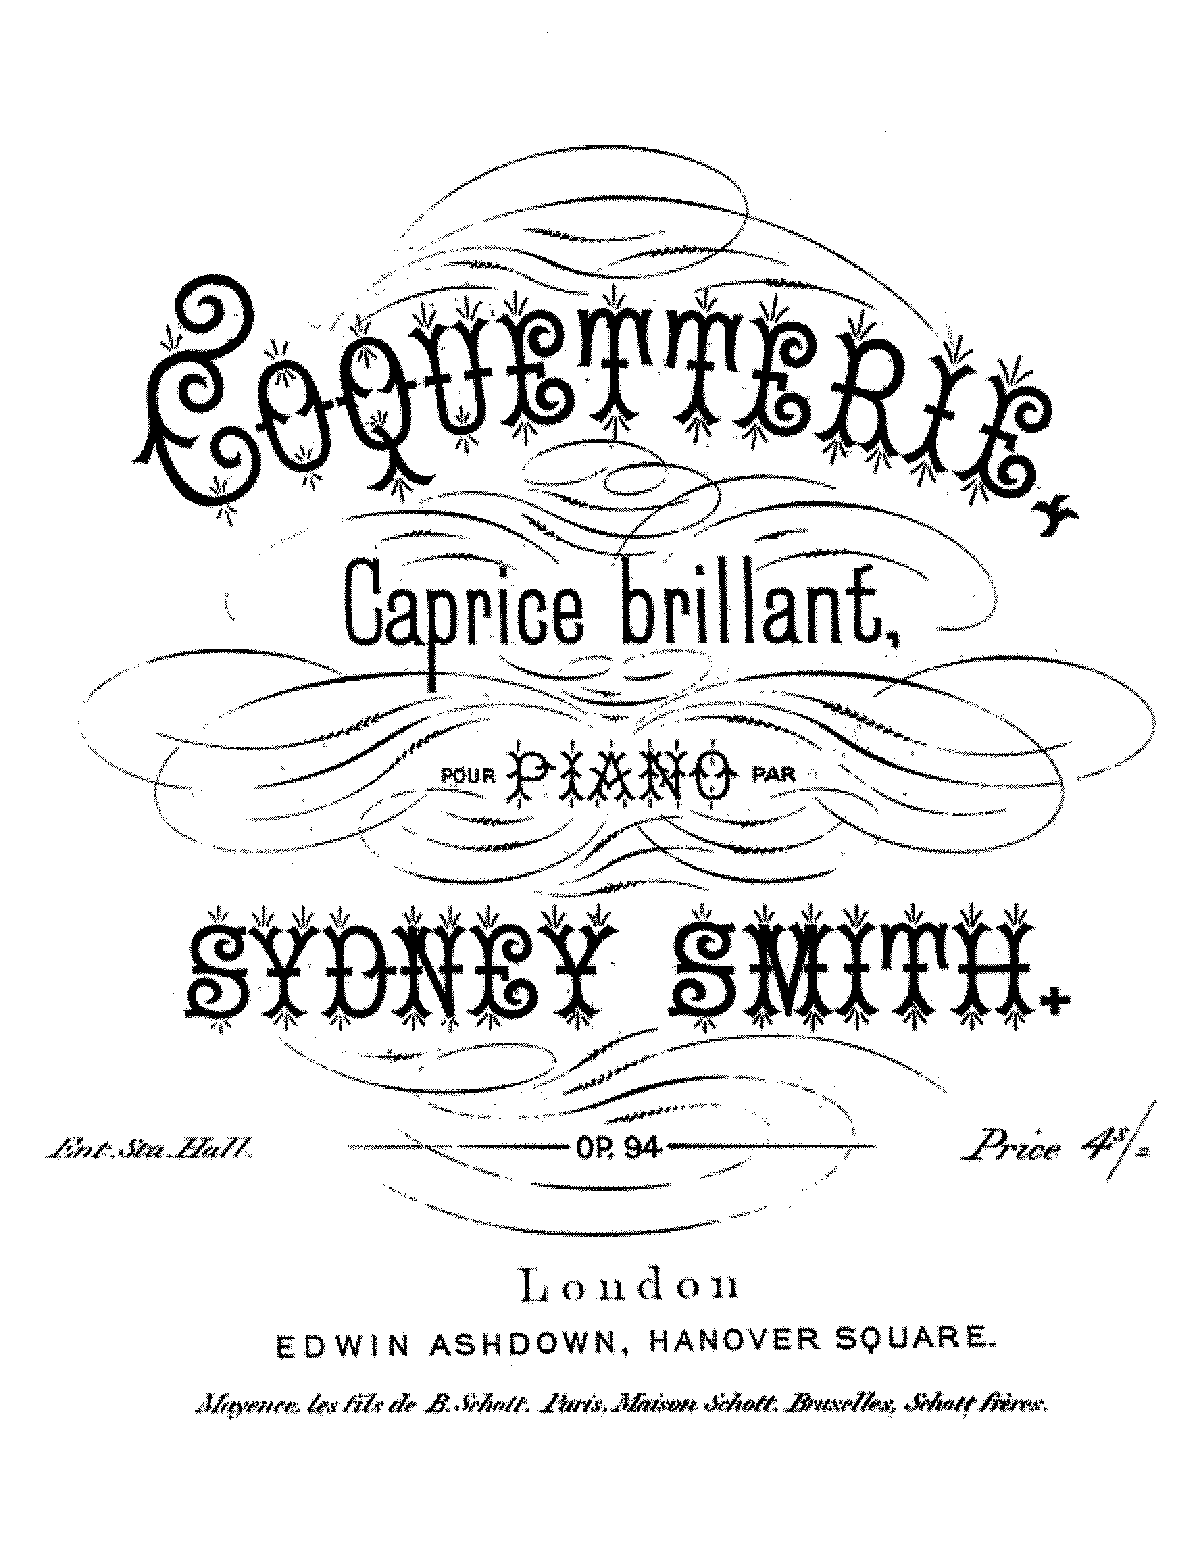 Smith, Sydney op094 coquetterie.pdf